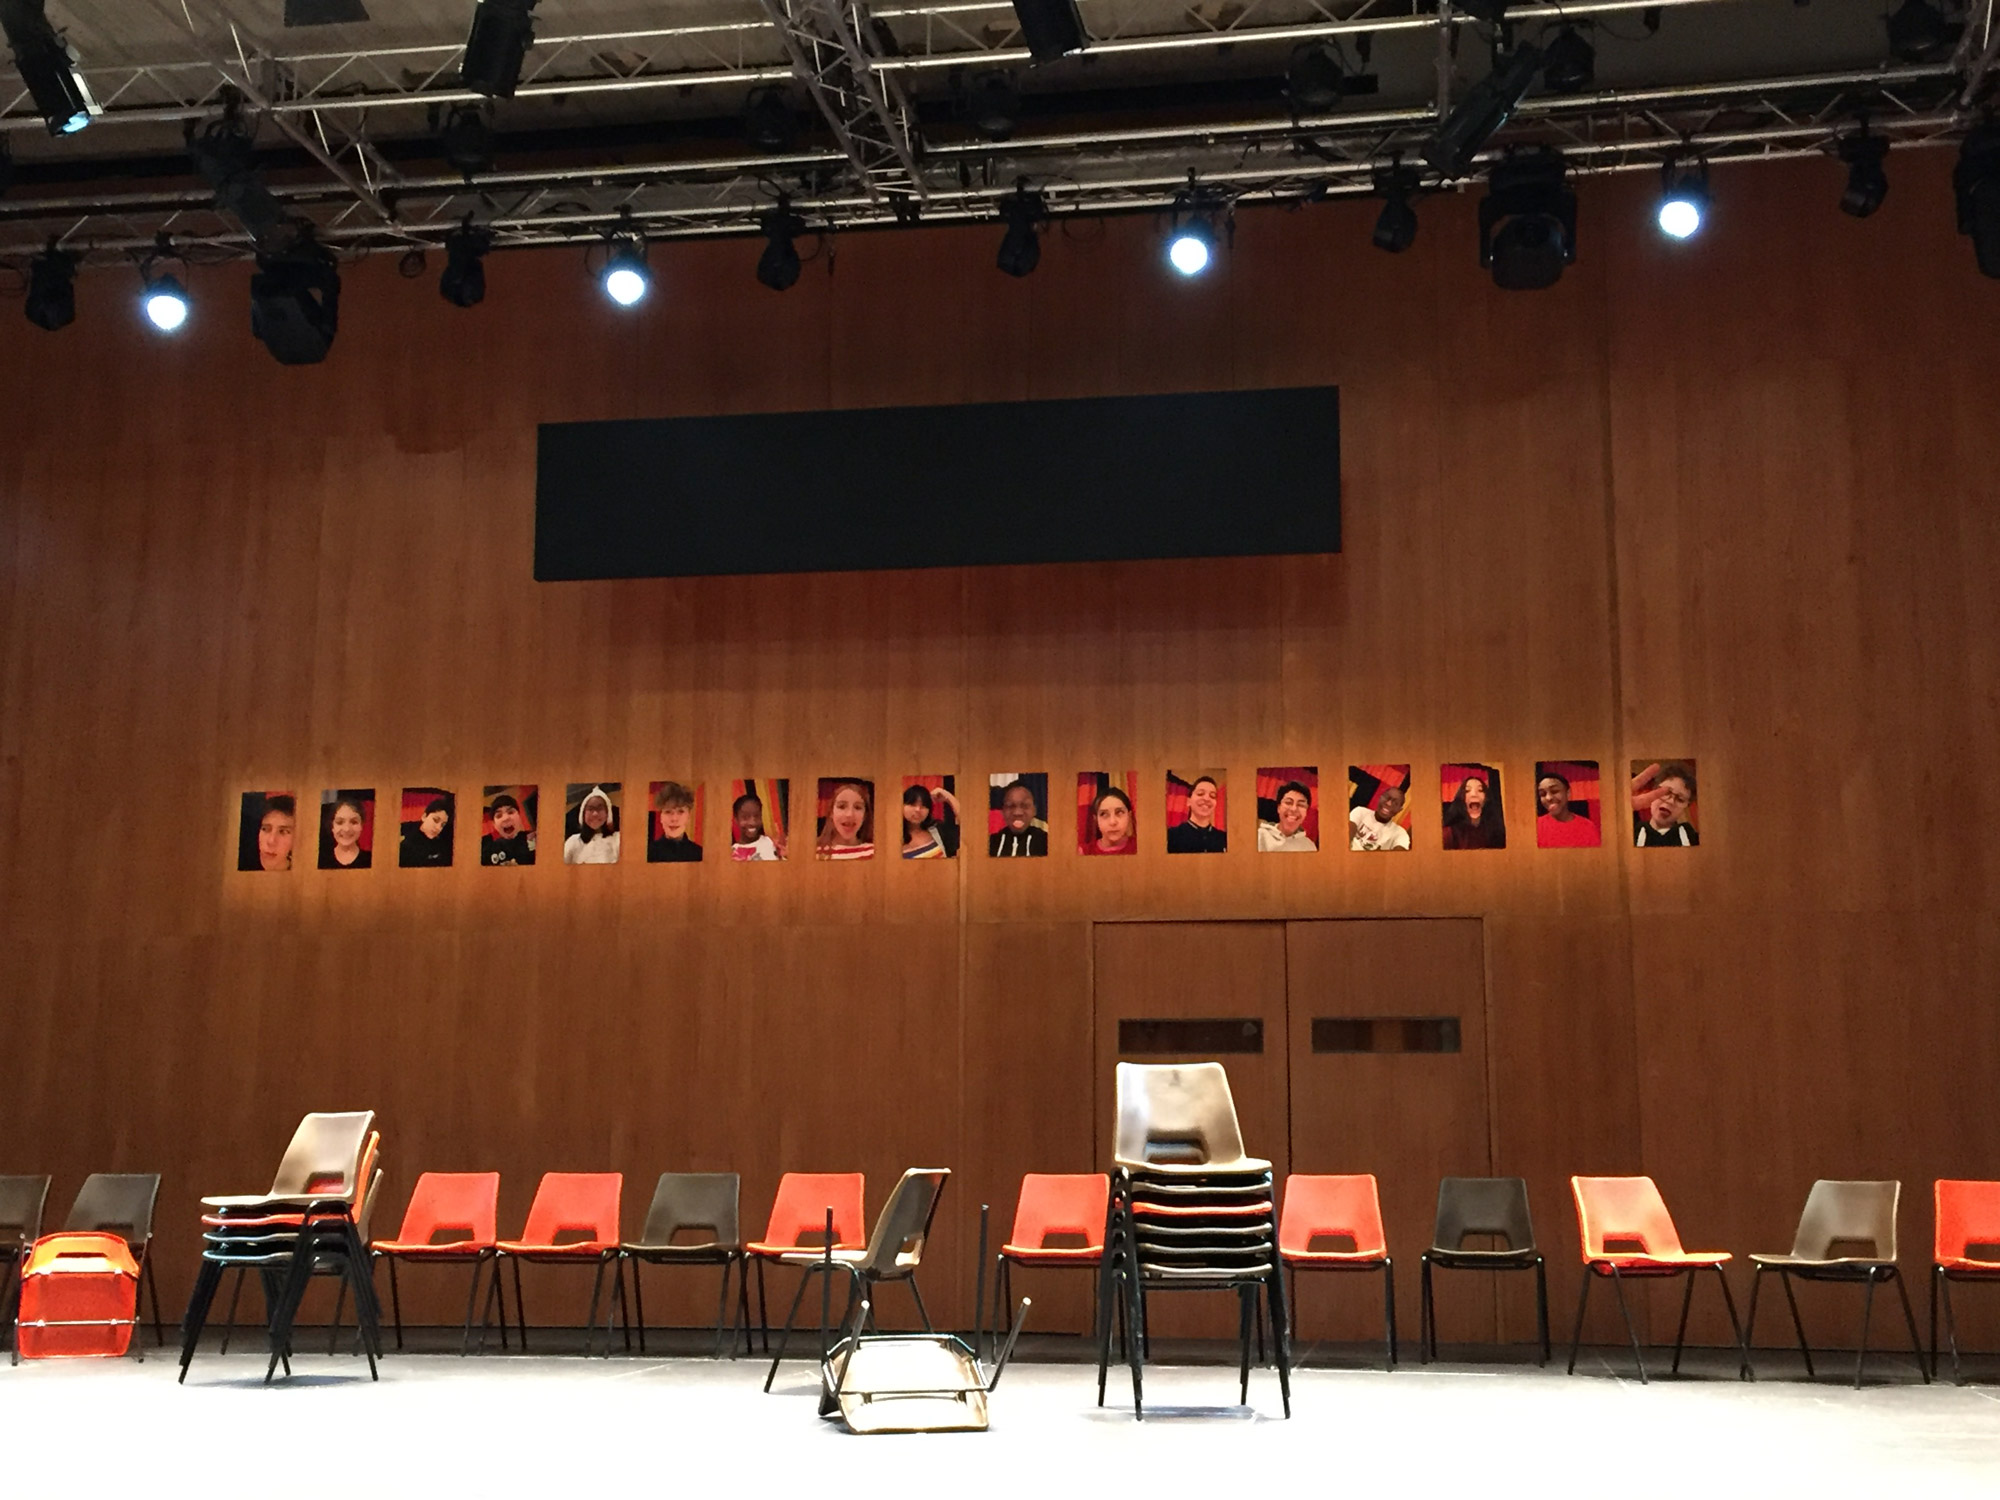 Dozens of plastic chairs are stacked and scattered on an otherwise empty stage. Behind them a wooden backdrop has 17 small photographs of children stuck in a row